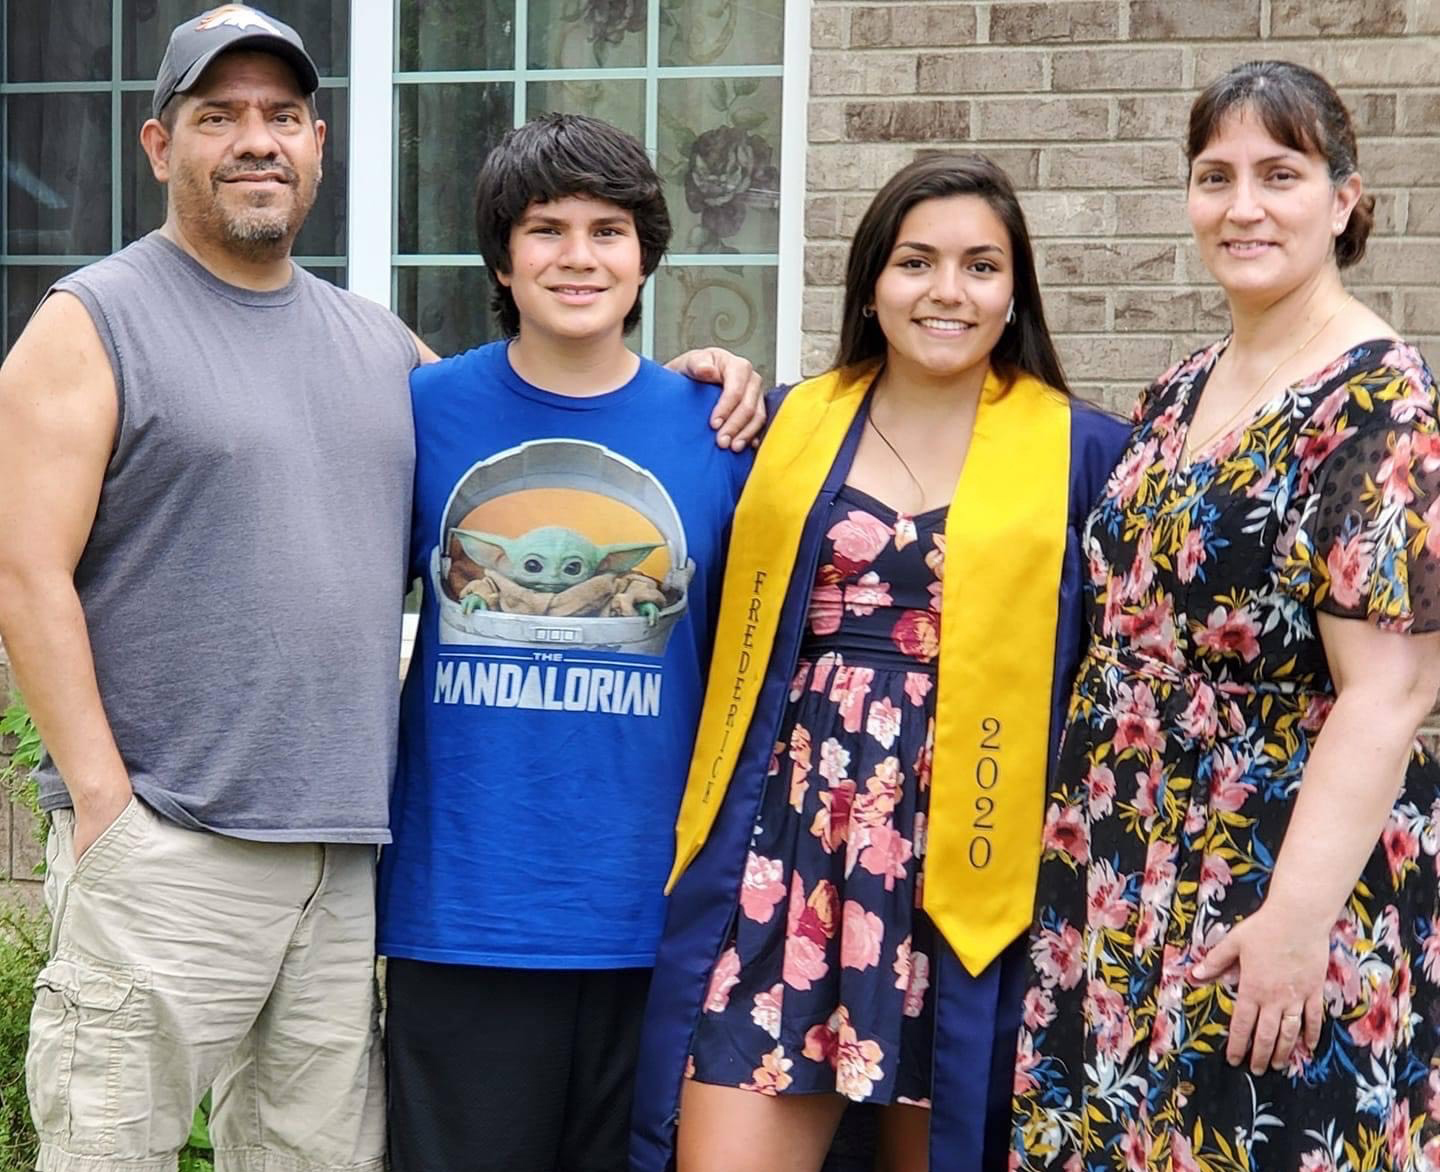 Tom Morales, organ recipient, with his family.